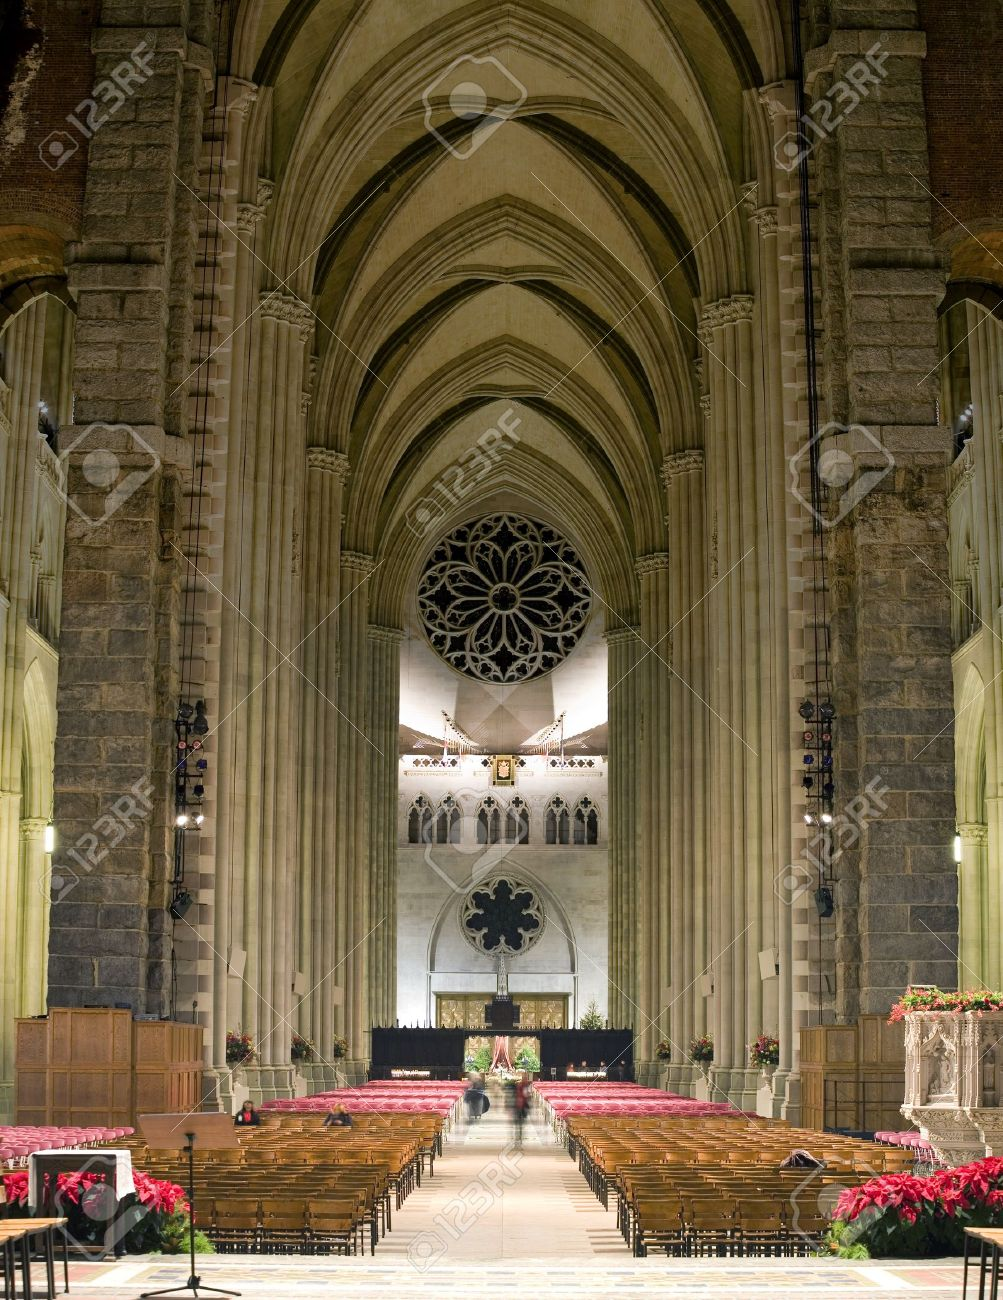 The Cathedral of St. John the Divine.  Amsterdam Avenue New York, NY  (between West 110th Street and 113 Street).    Stock Photo - 10321433